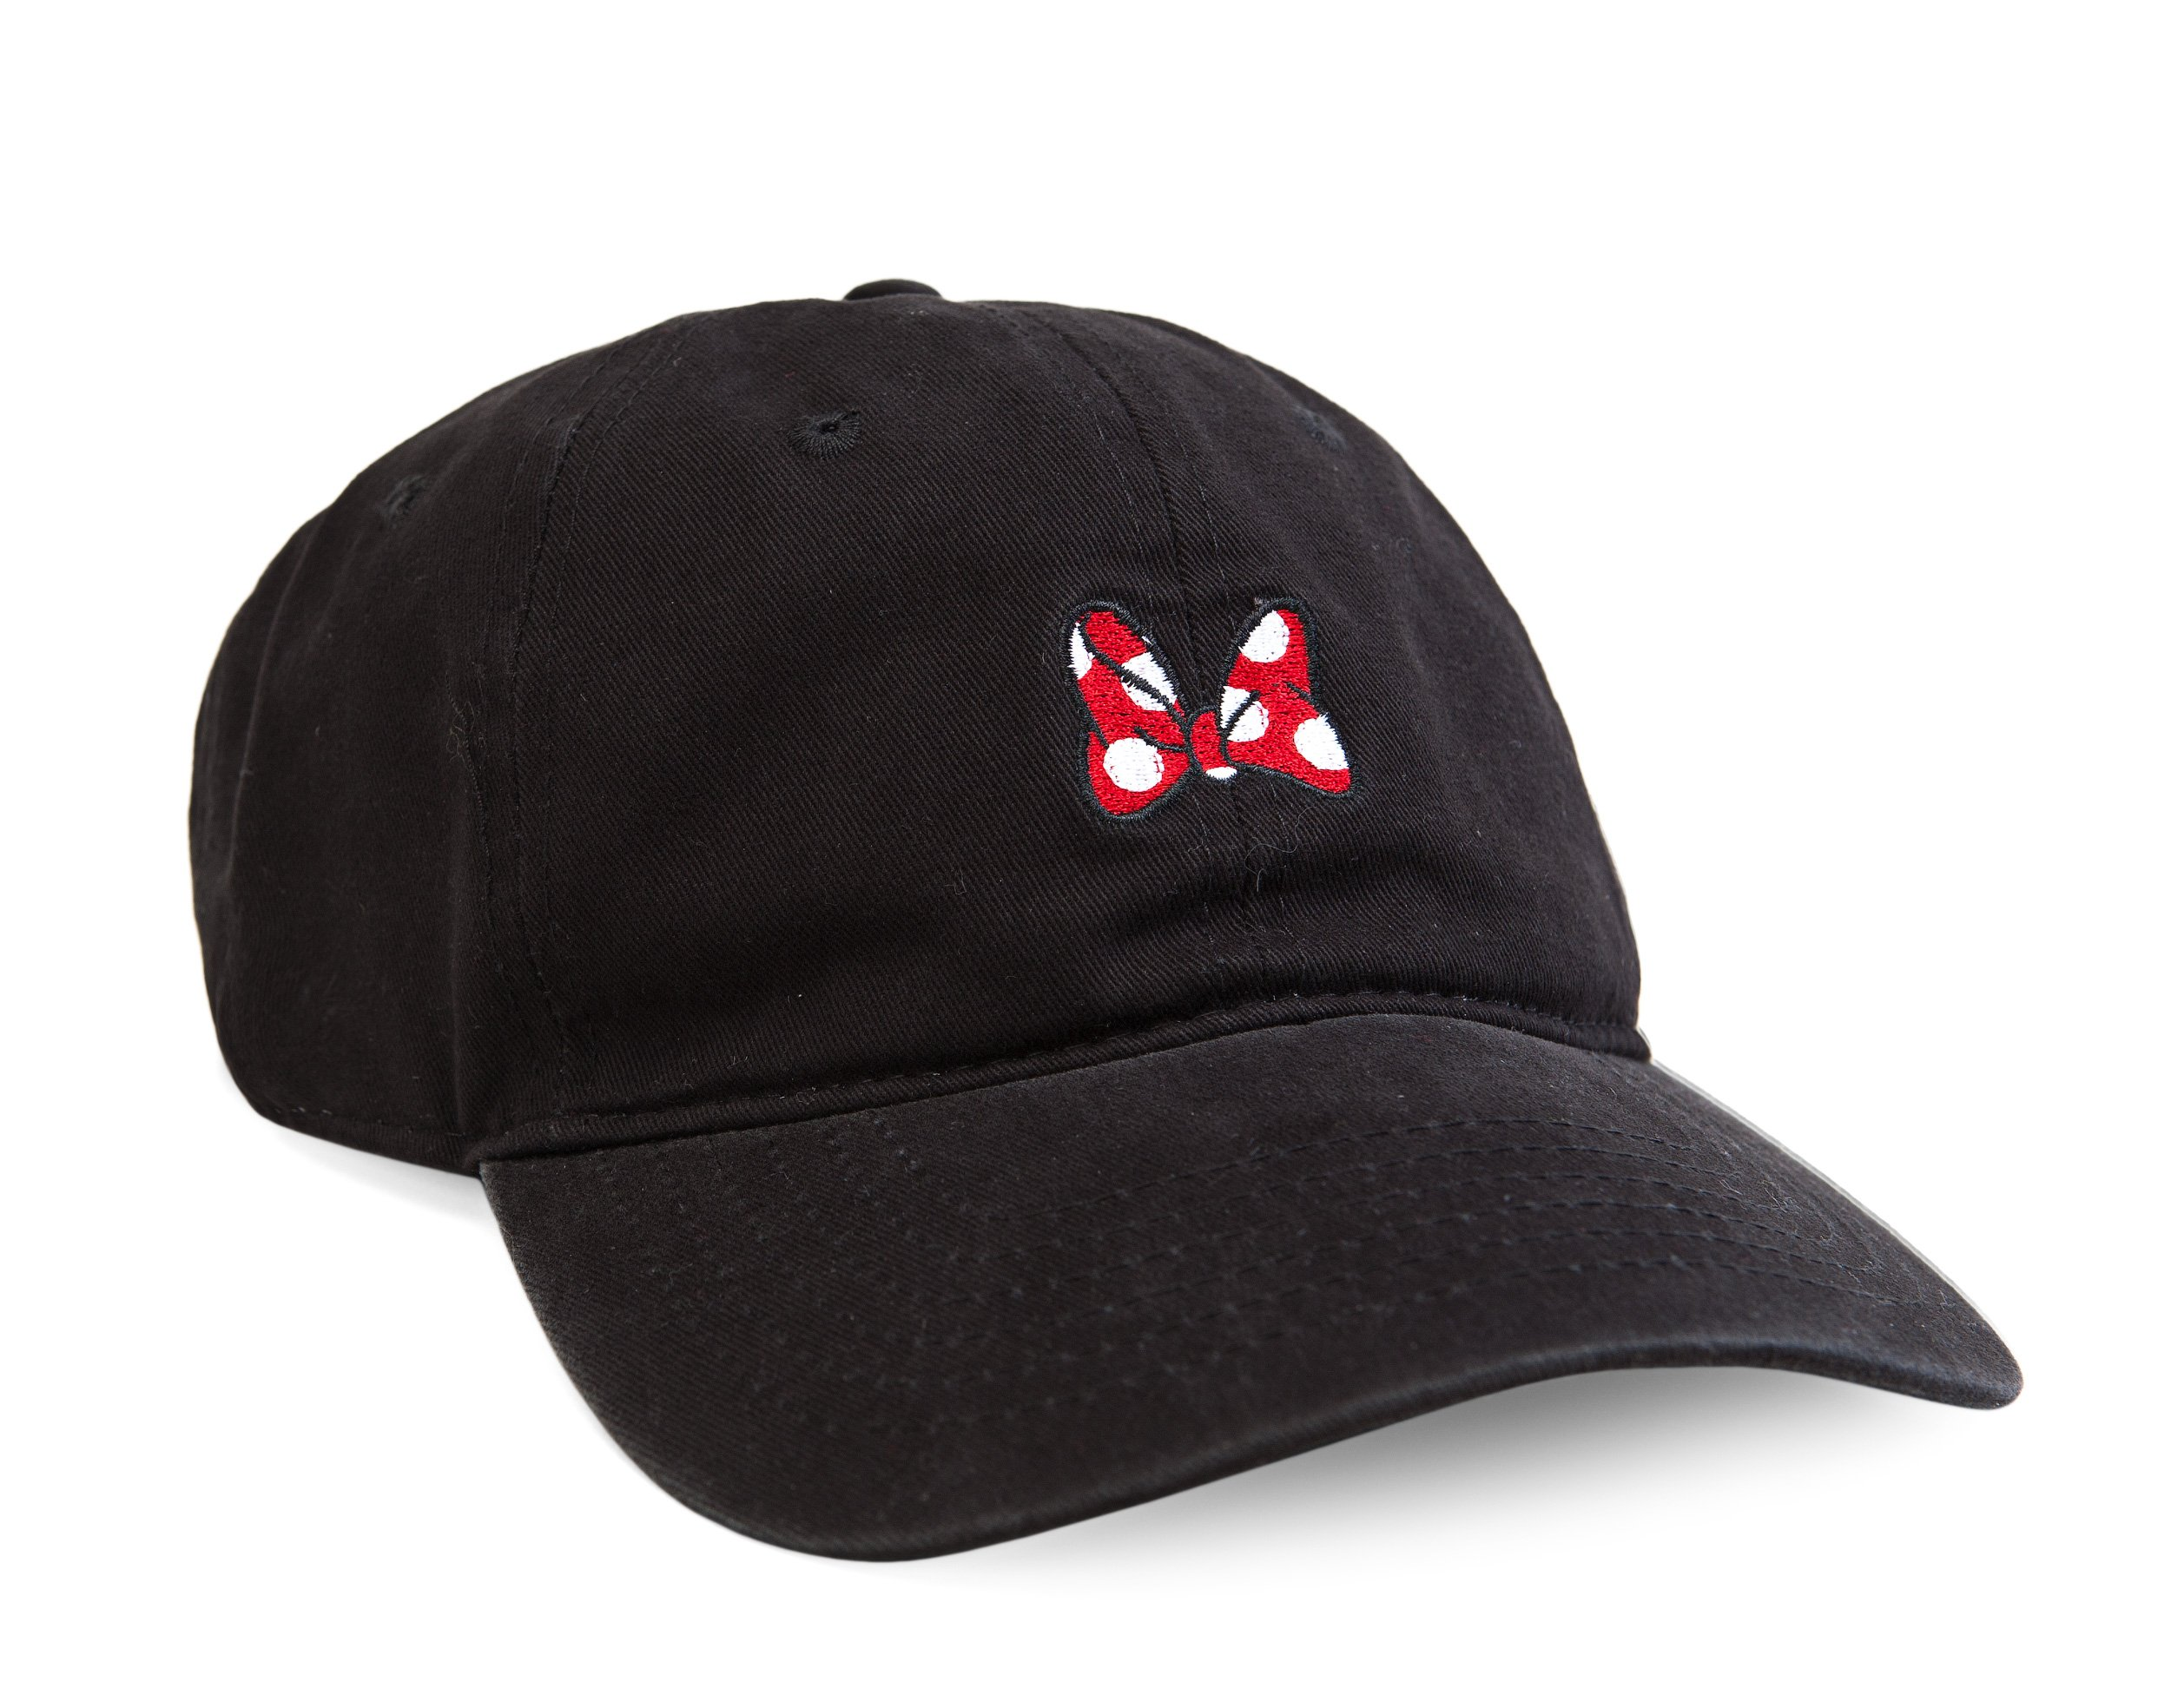 7422b2c7aa6 Get Quotations · Disney Women s Minnie Mouse Washed Baseball Cap